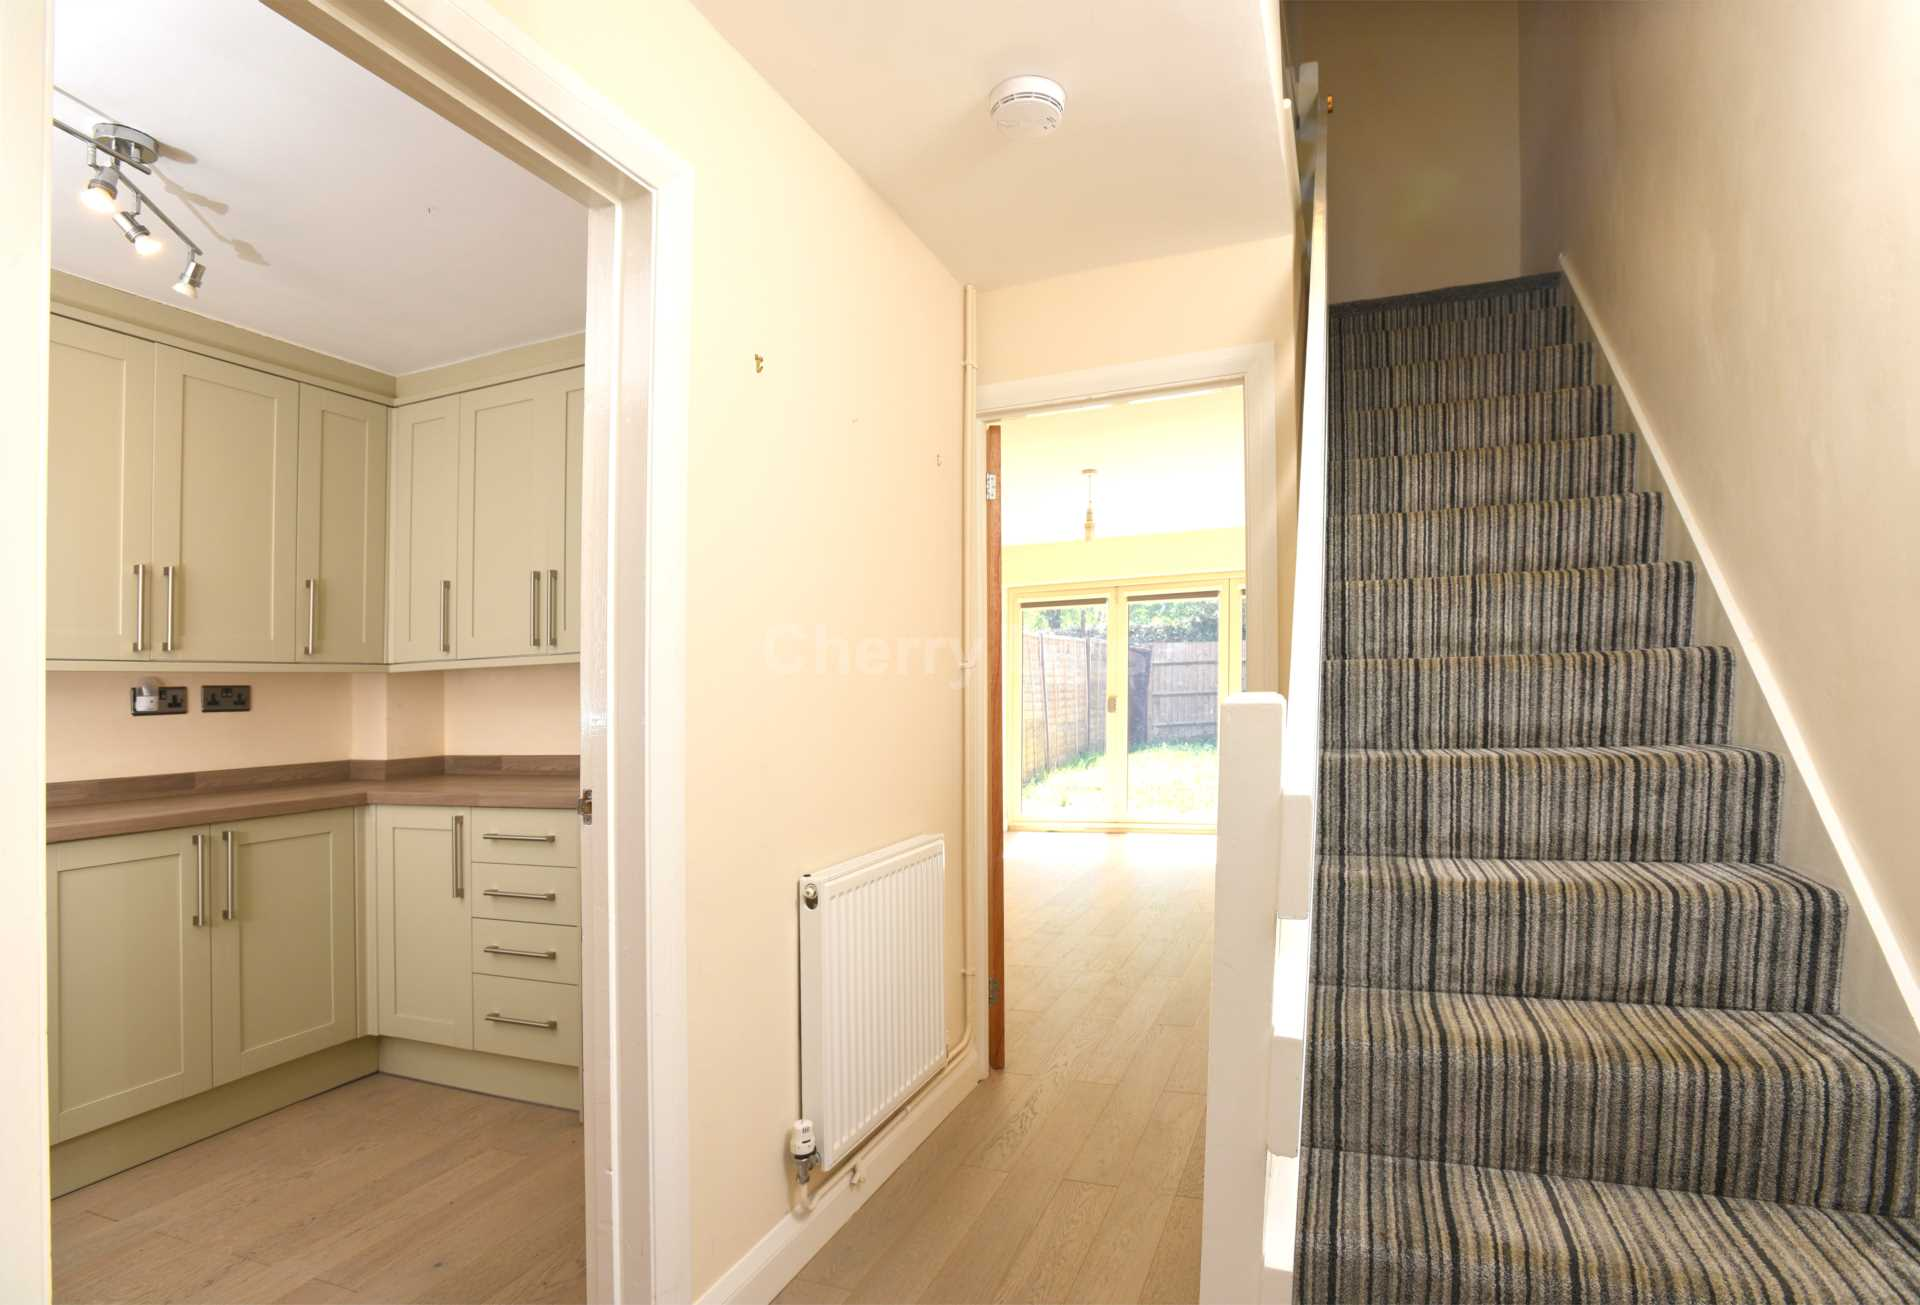 3 bed terraced house to rent in Keytes Close, Adderbury, OX17  - Property Image 6